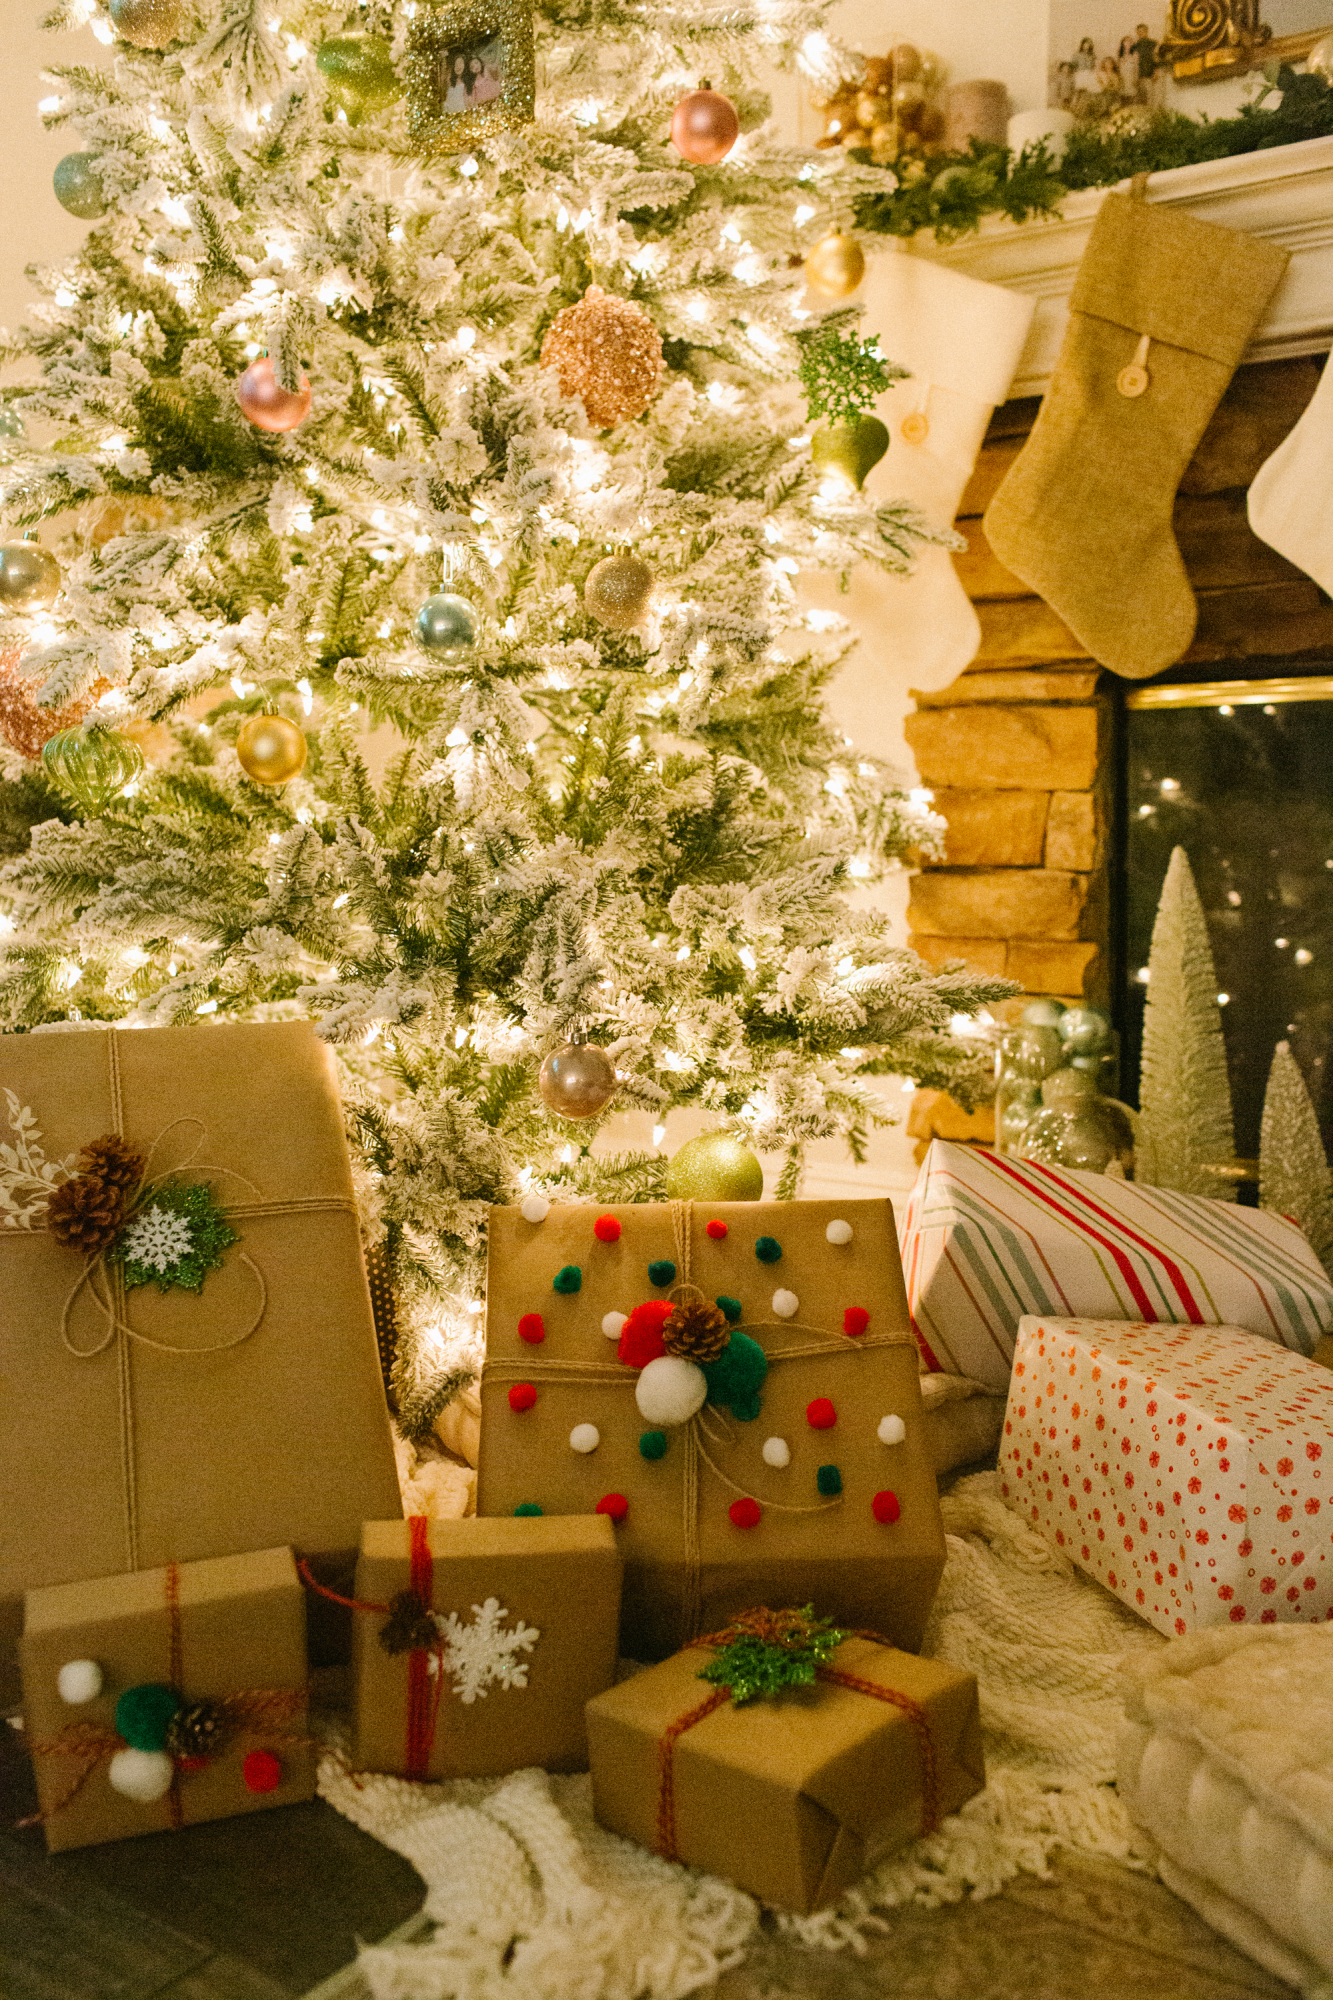 Affordable Gift Wrapping Ideas for Christmas